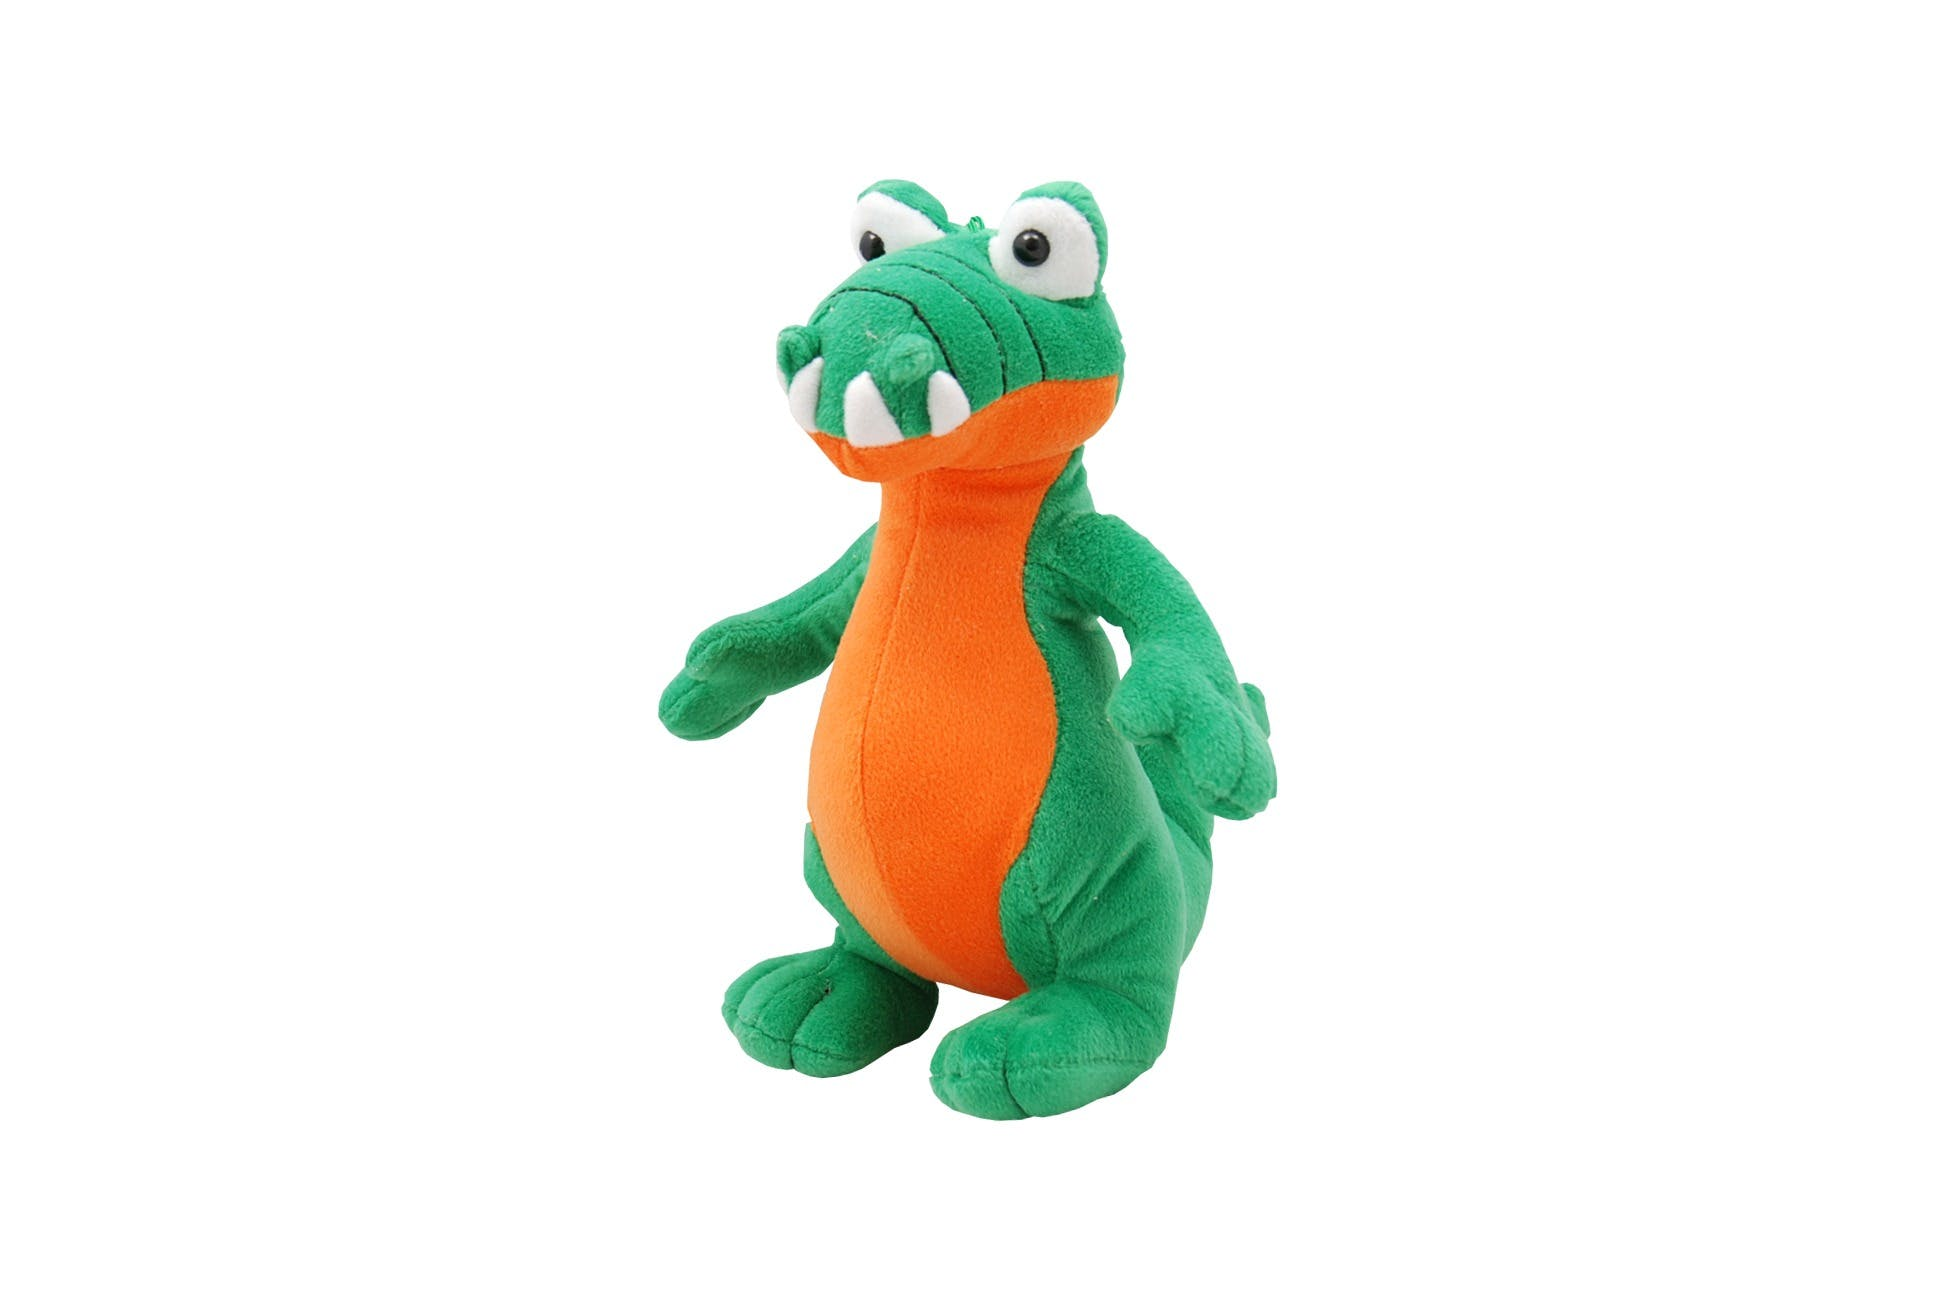 Green and Orange Dinosaur Plush Toy